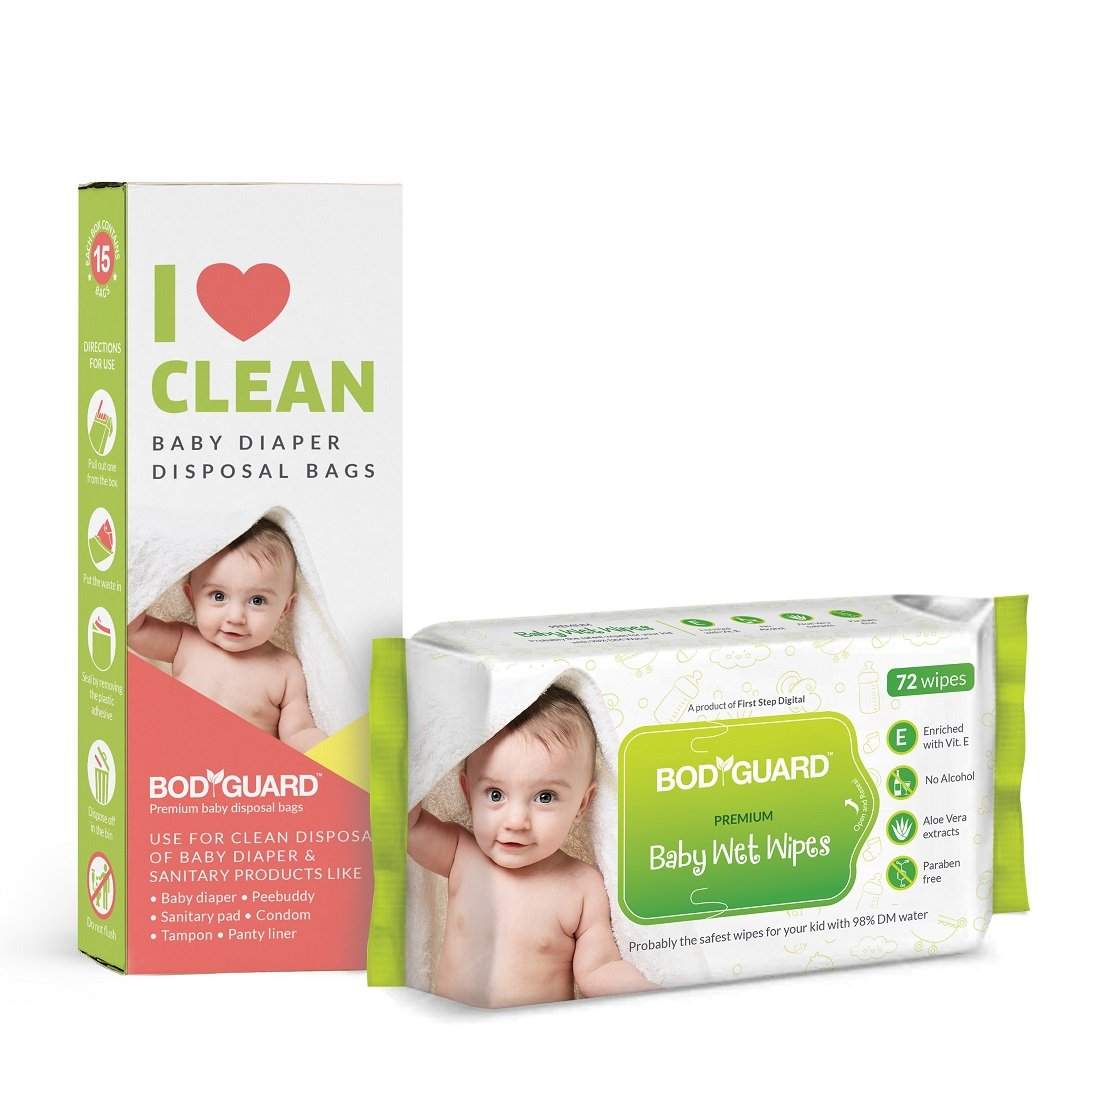 Bodyguard Baby Wet Wipes - 72 Pieces with Baby Diaper Disposal Bags - 15 Pieces